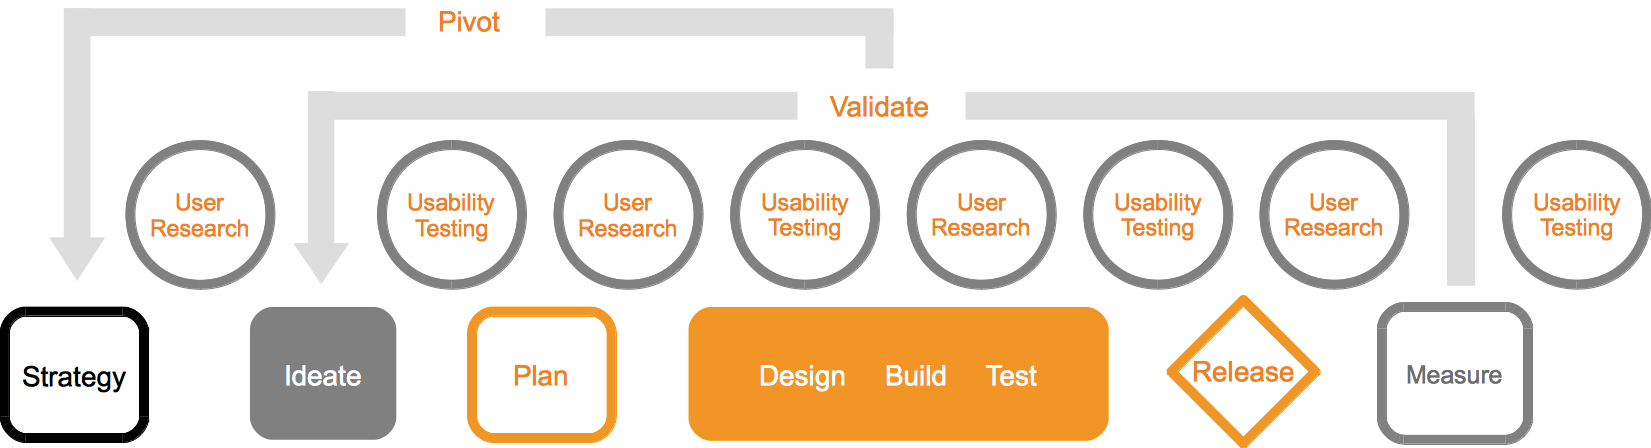 User Research and Usability Testing